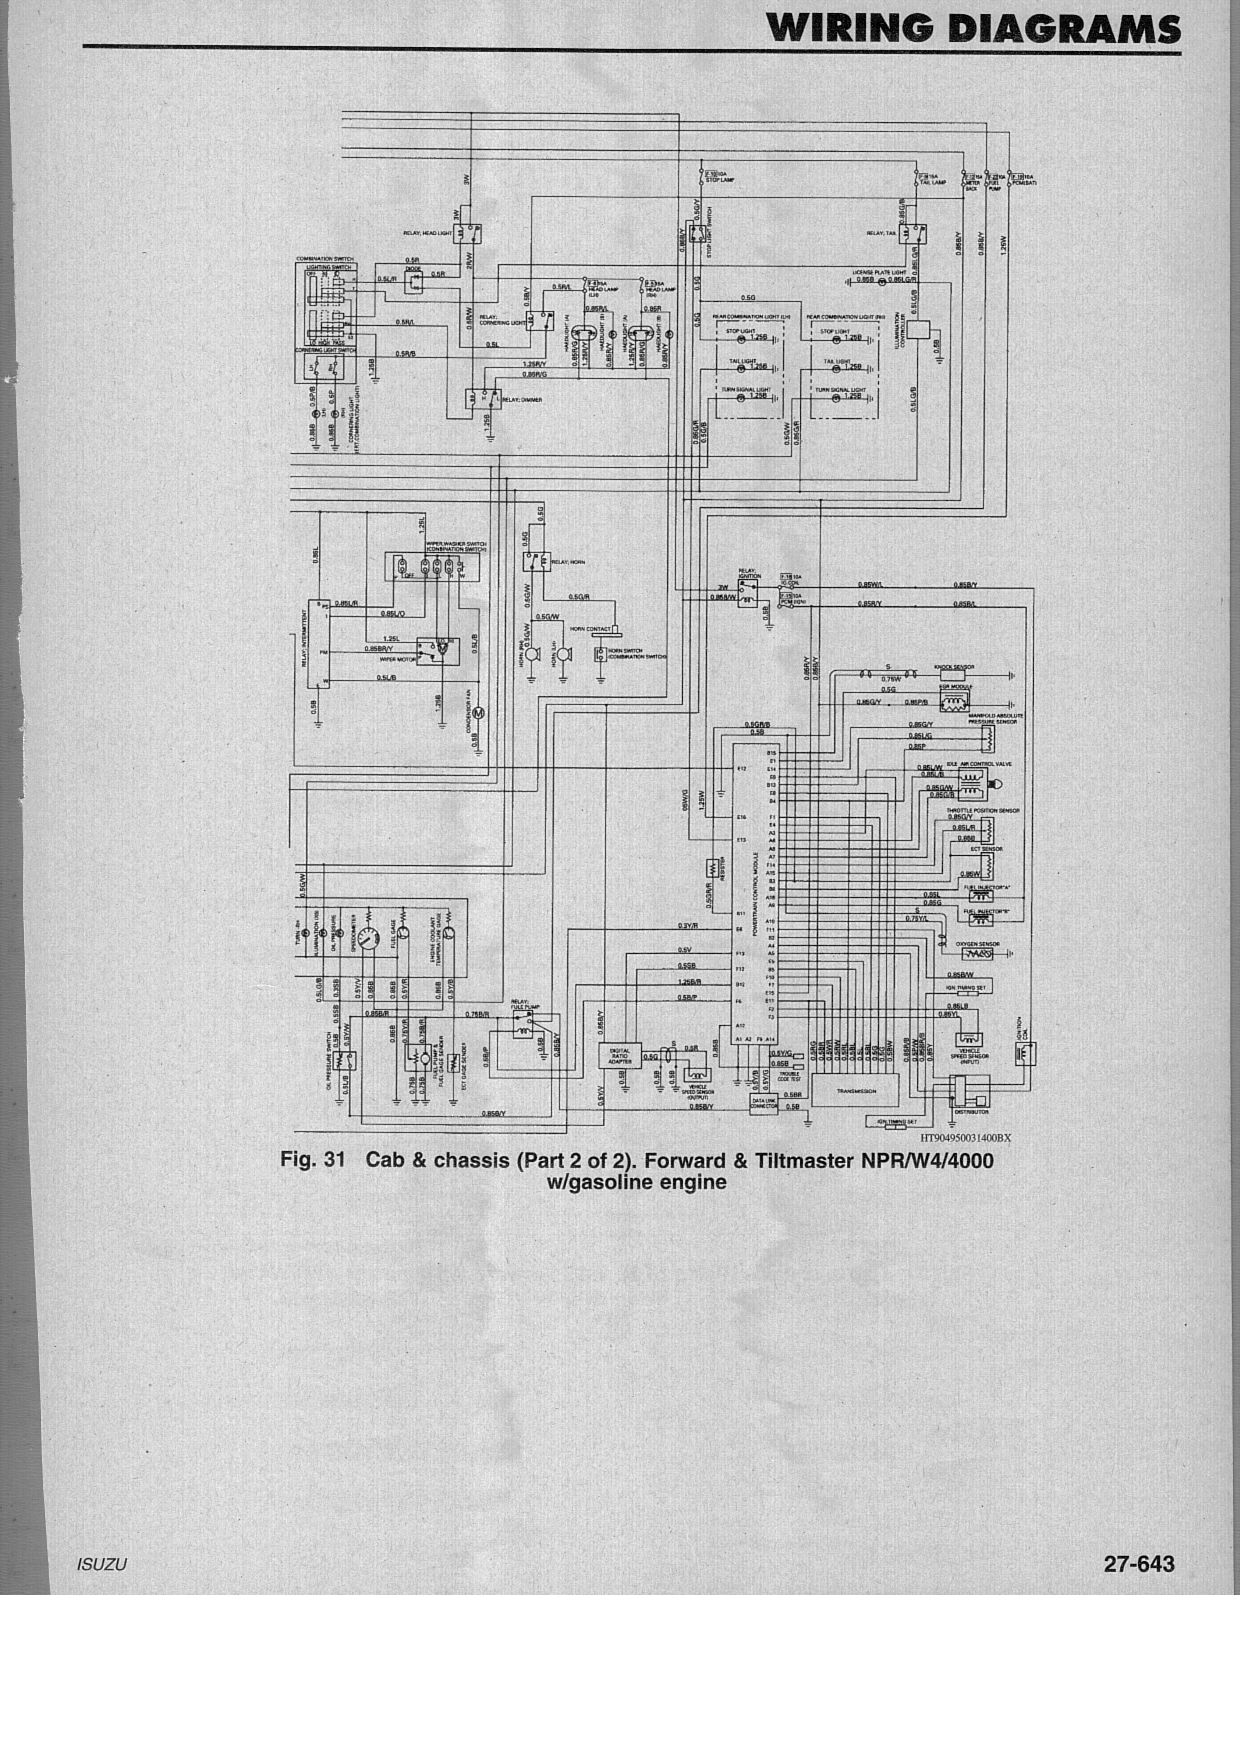 1995 isuzu npr wiring diagrams   30 wiring diagram images